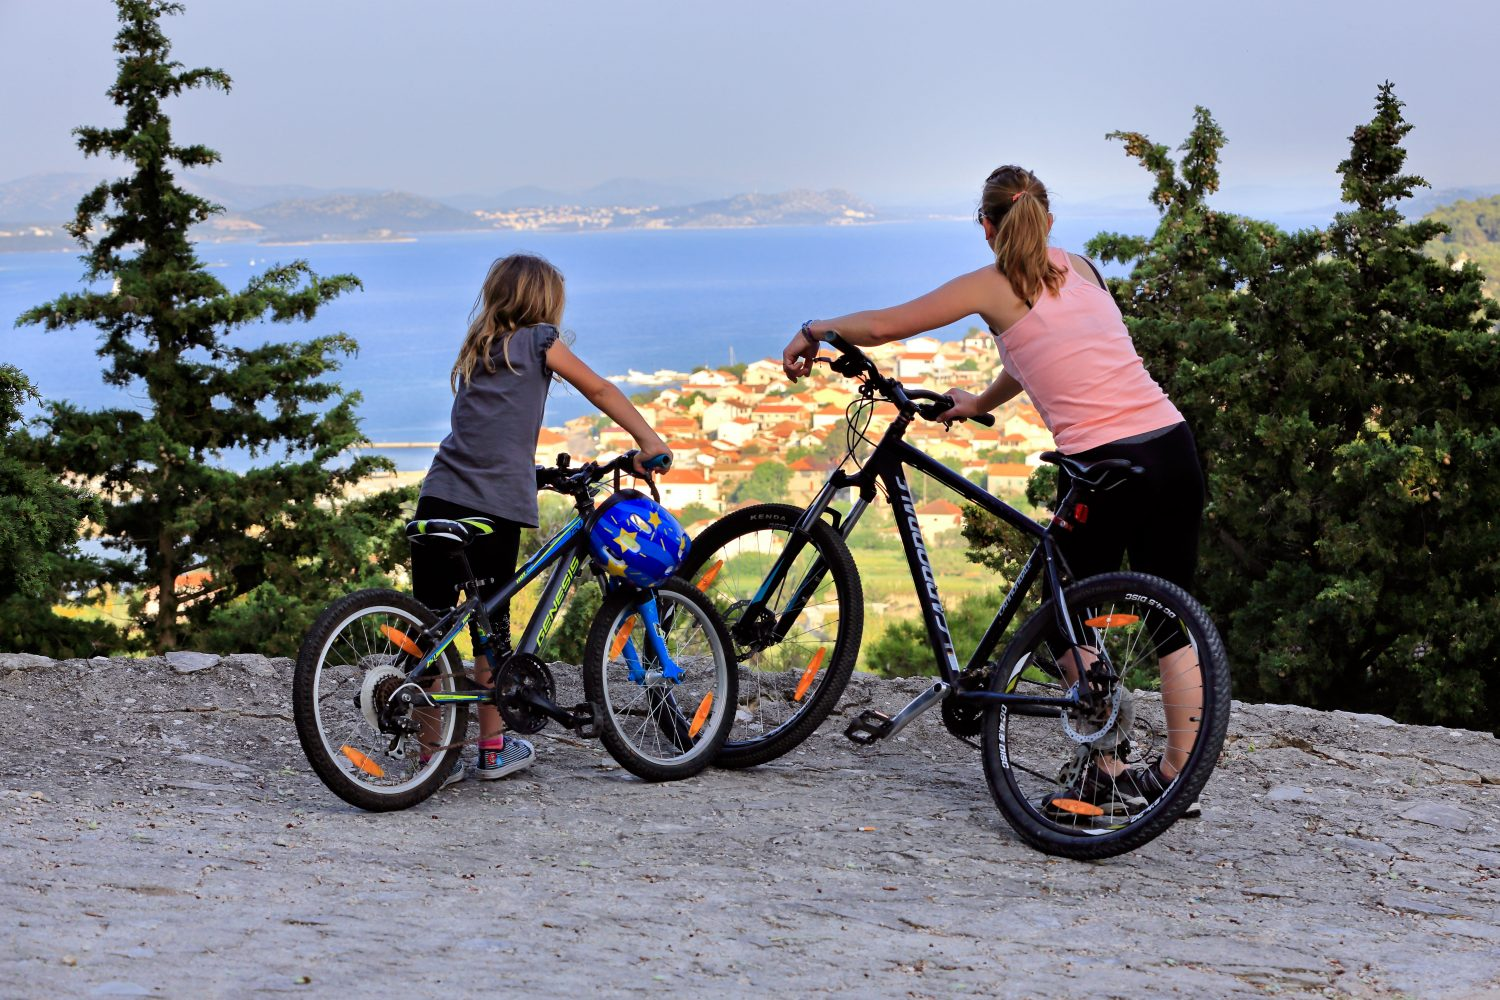 Archipelago Tours - Krka Experience Private Tour photo couple of tourists with bikes